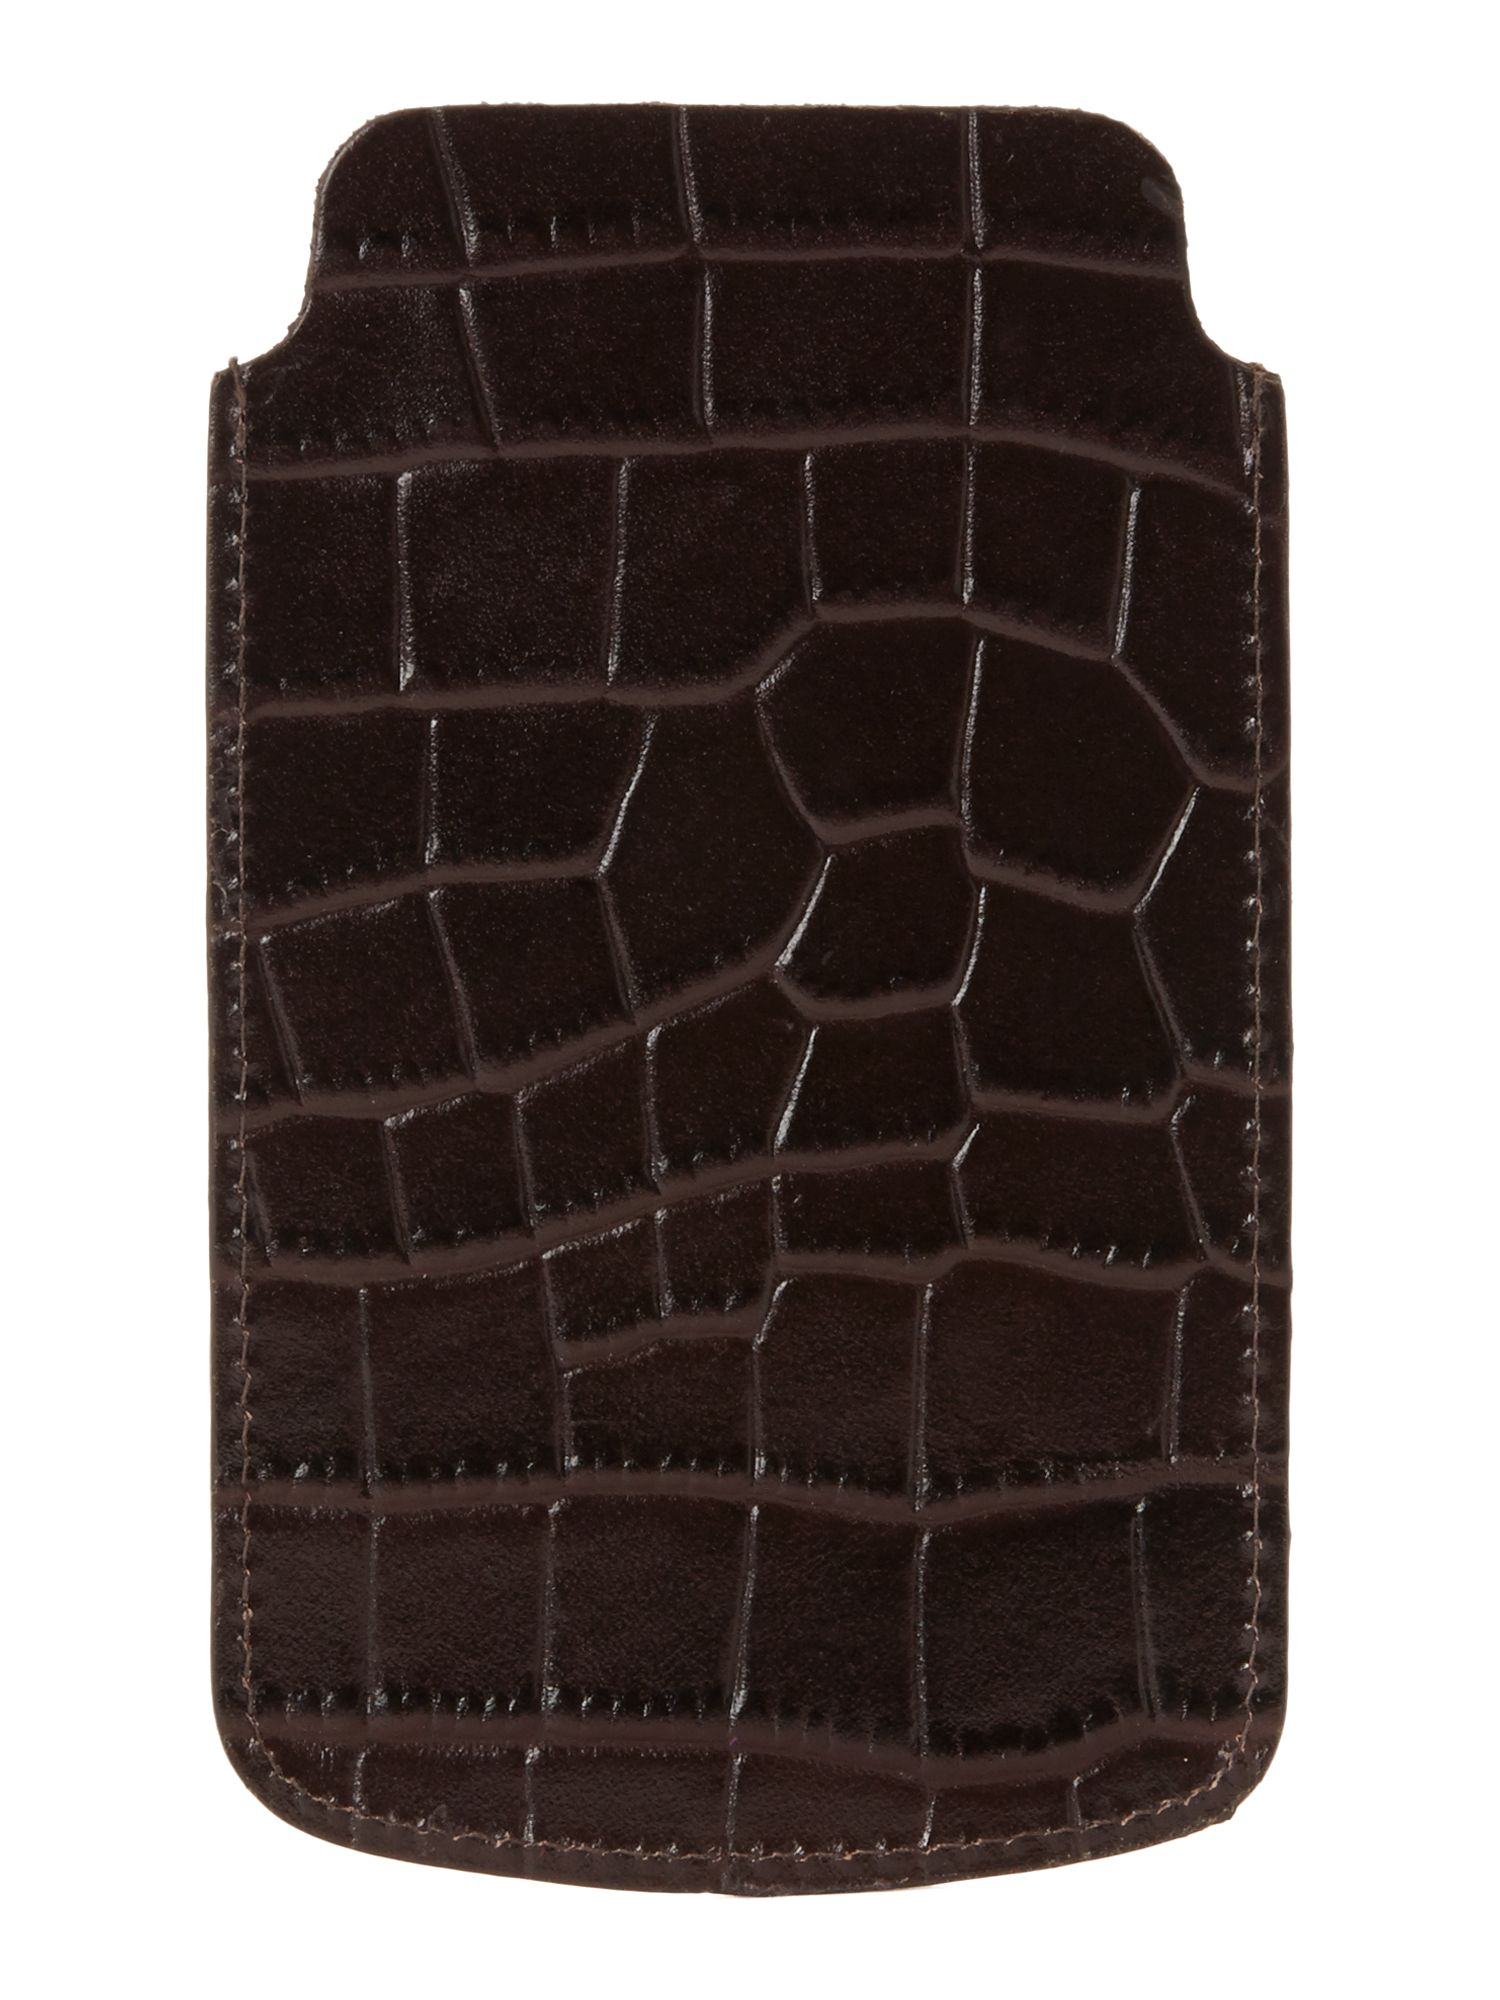 Mock Croc iPhone 5 case